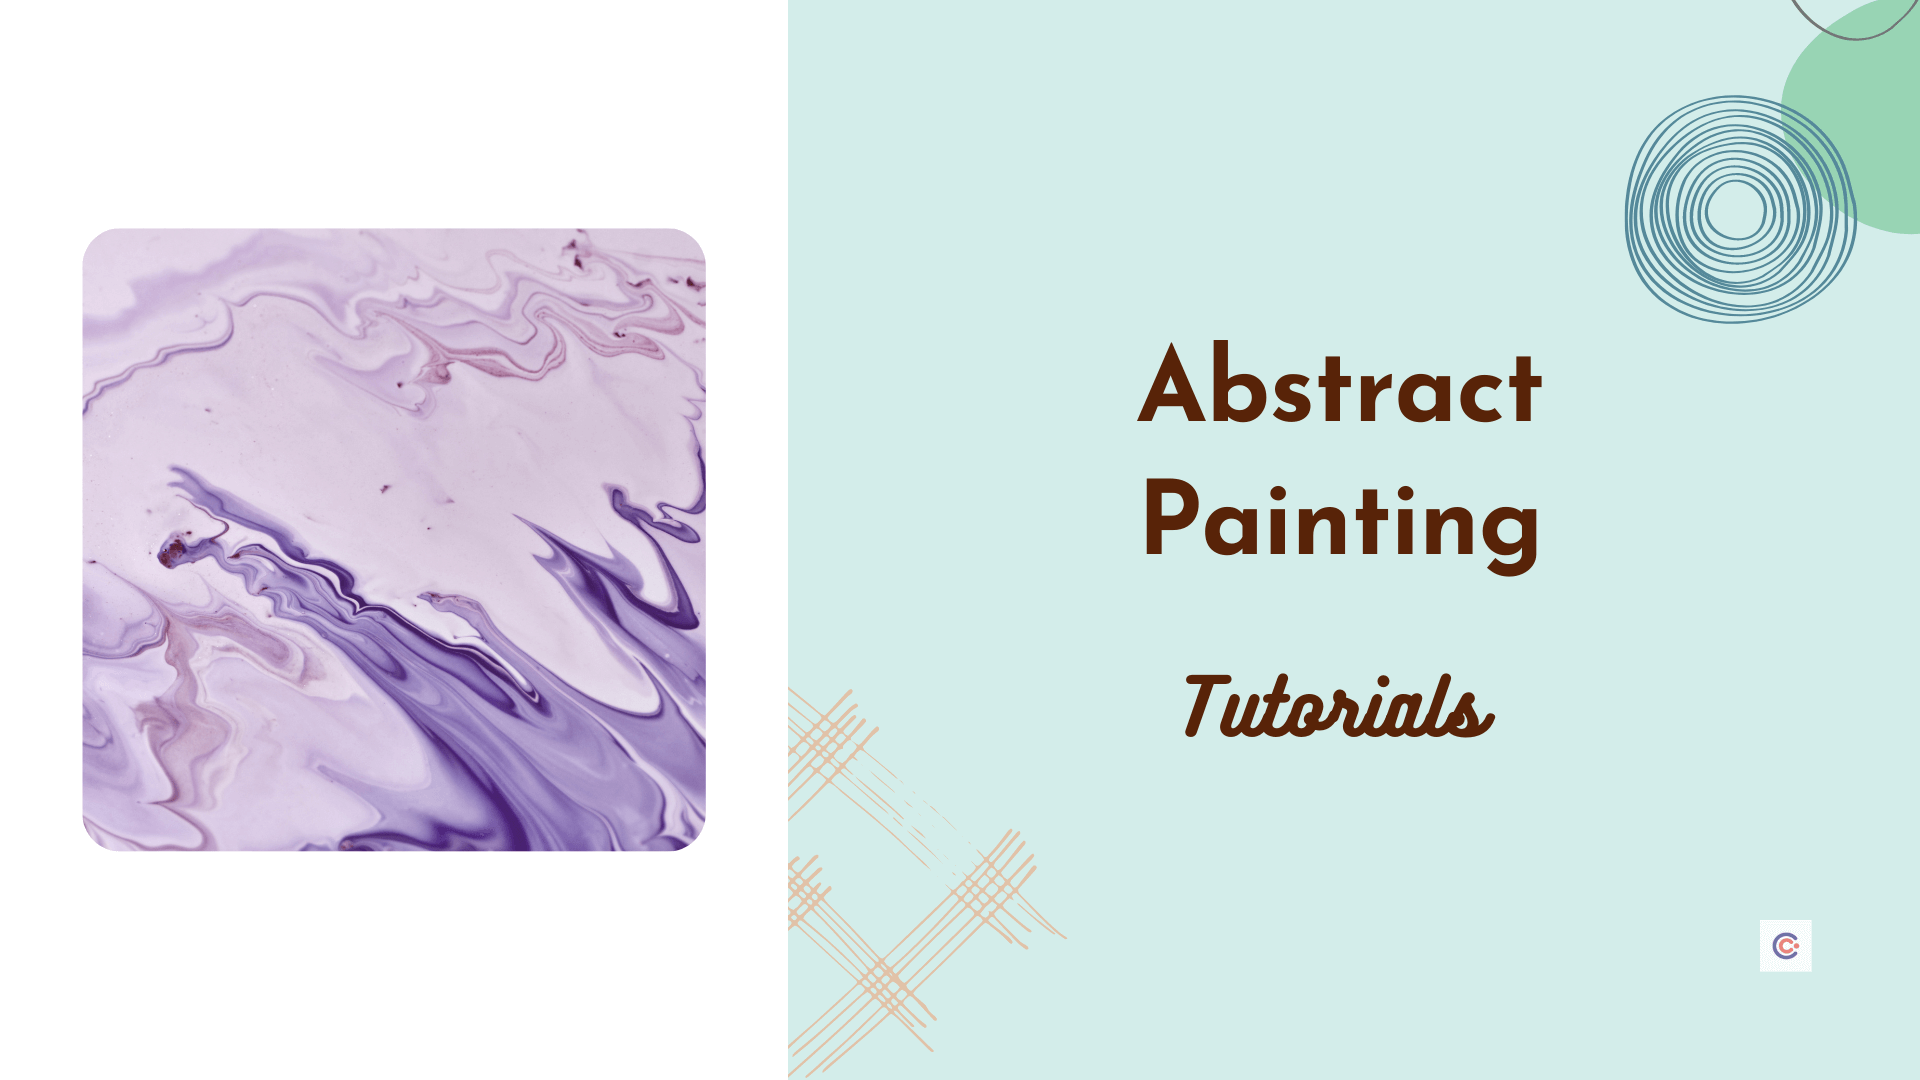 6 Best Abstract Painting Tutorials - Learn Abstract Painting Online